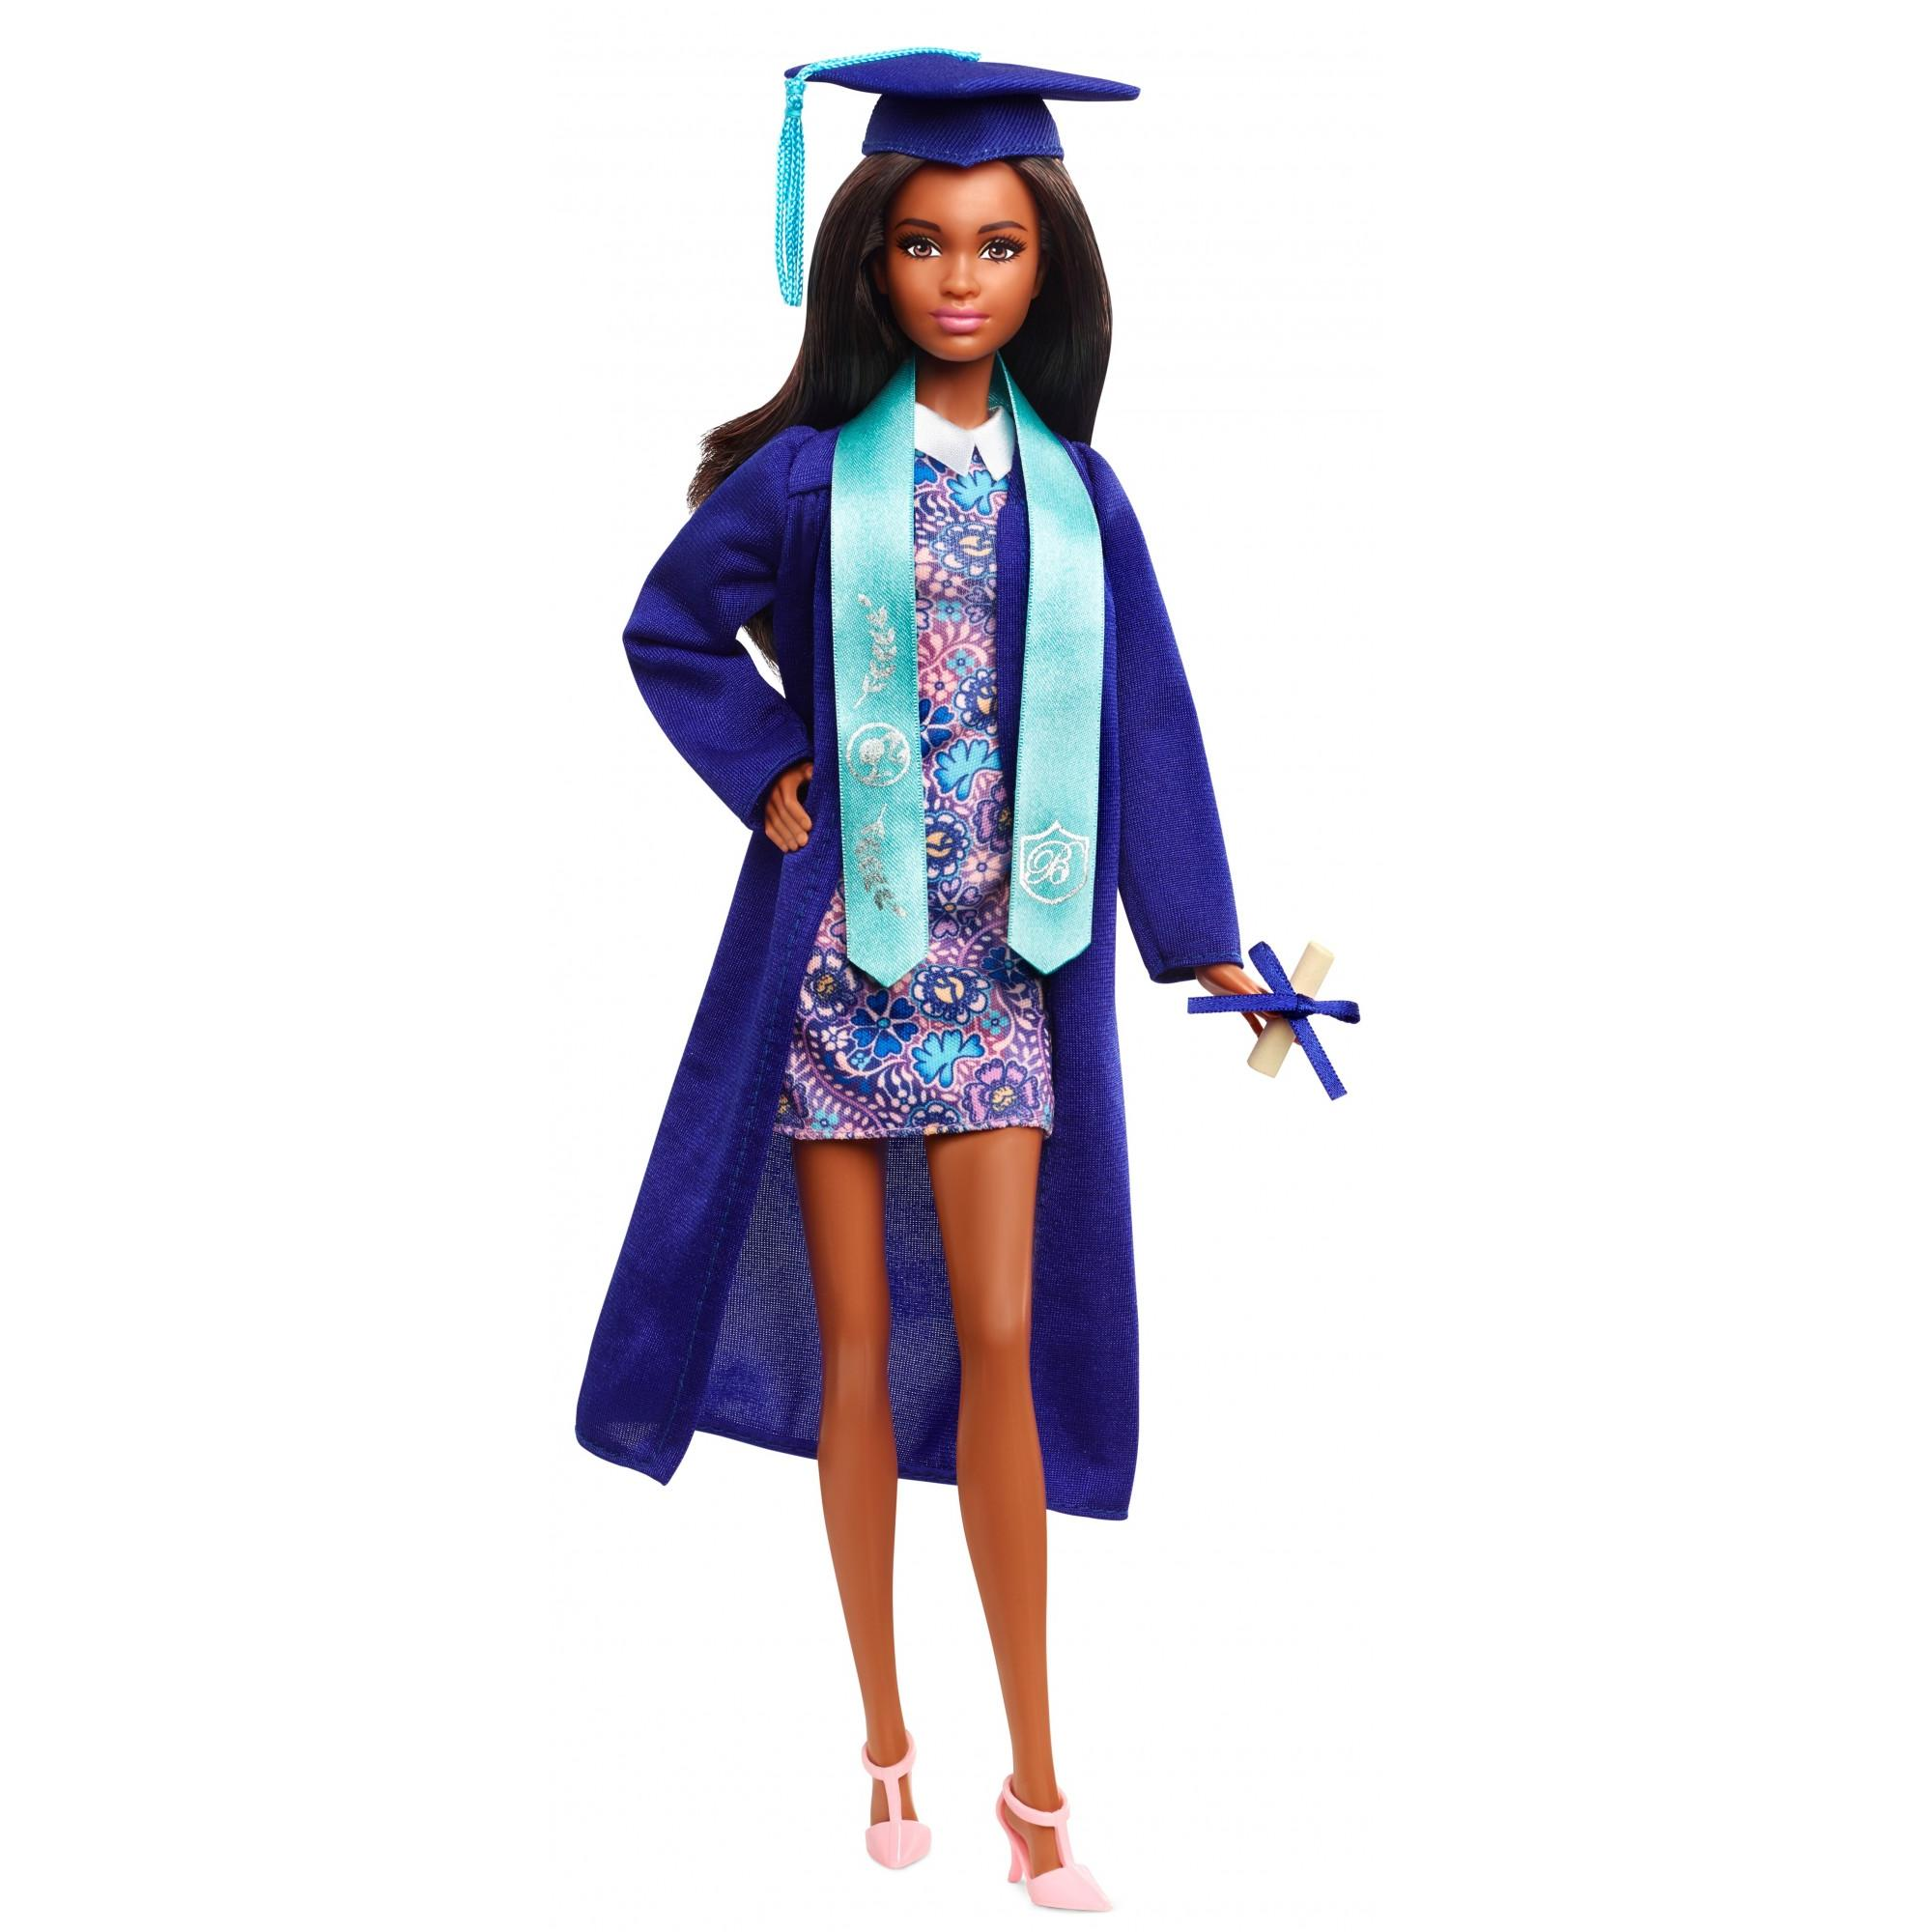 Barbie Graduation Day Doll, Brunette